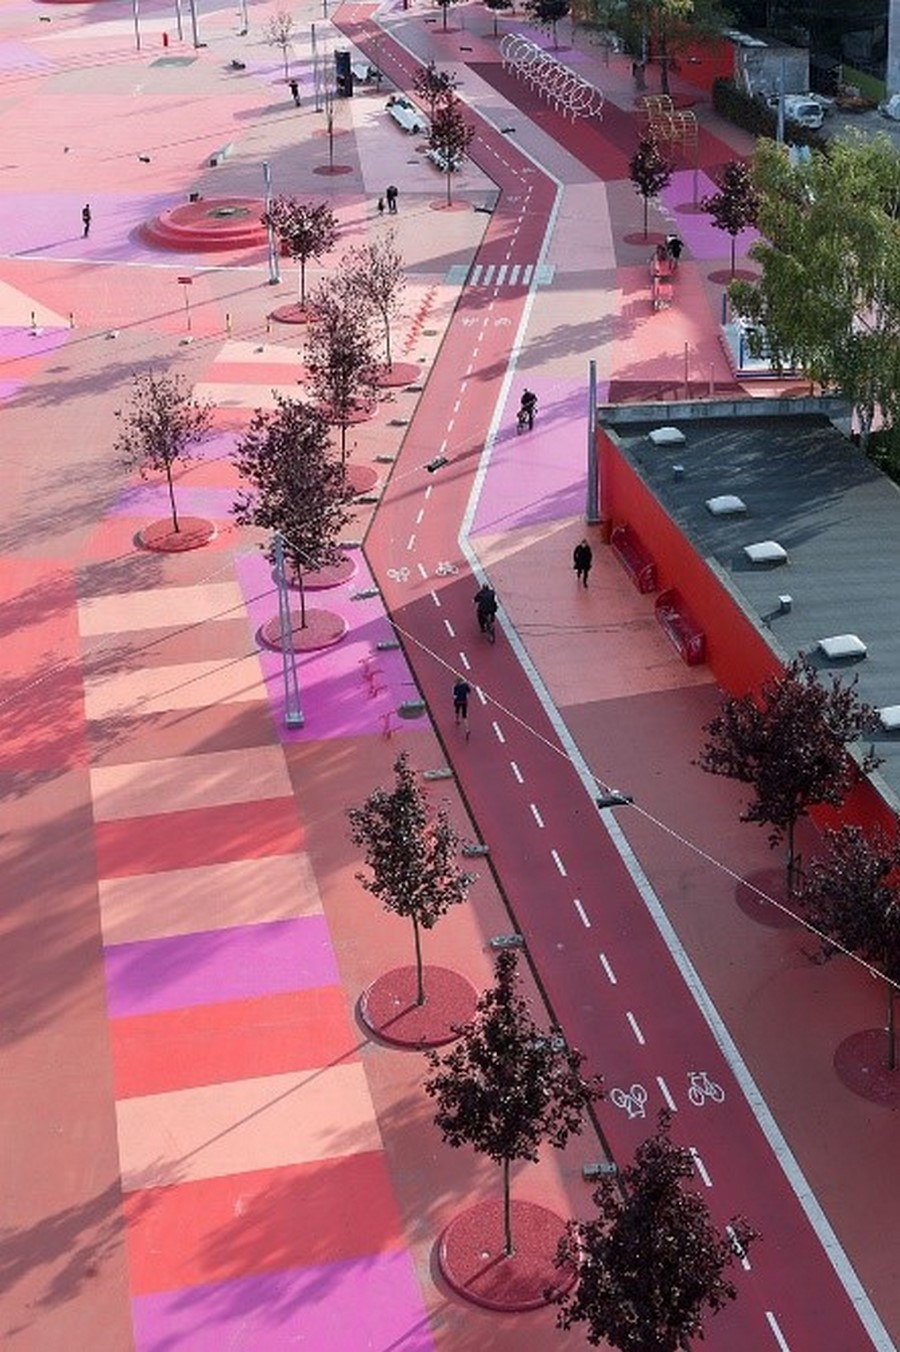 Evolution of Public Spaces in Contemporary Urban Life - Sheet5